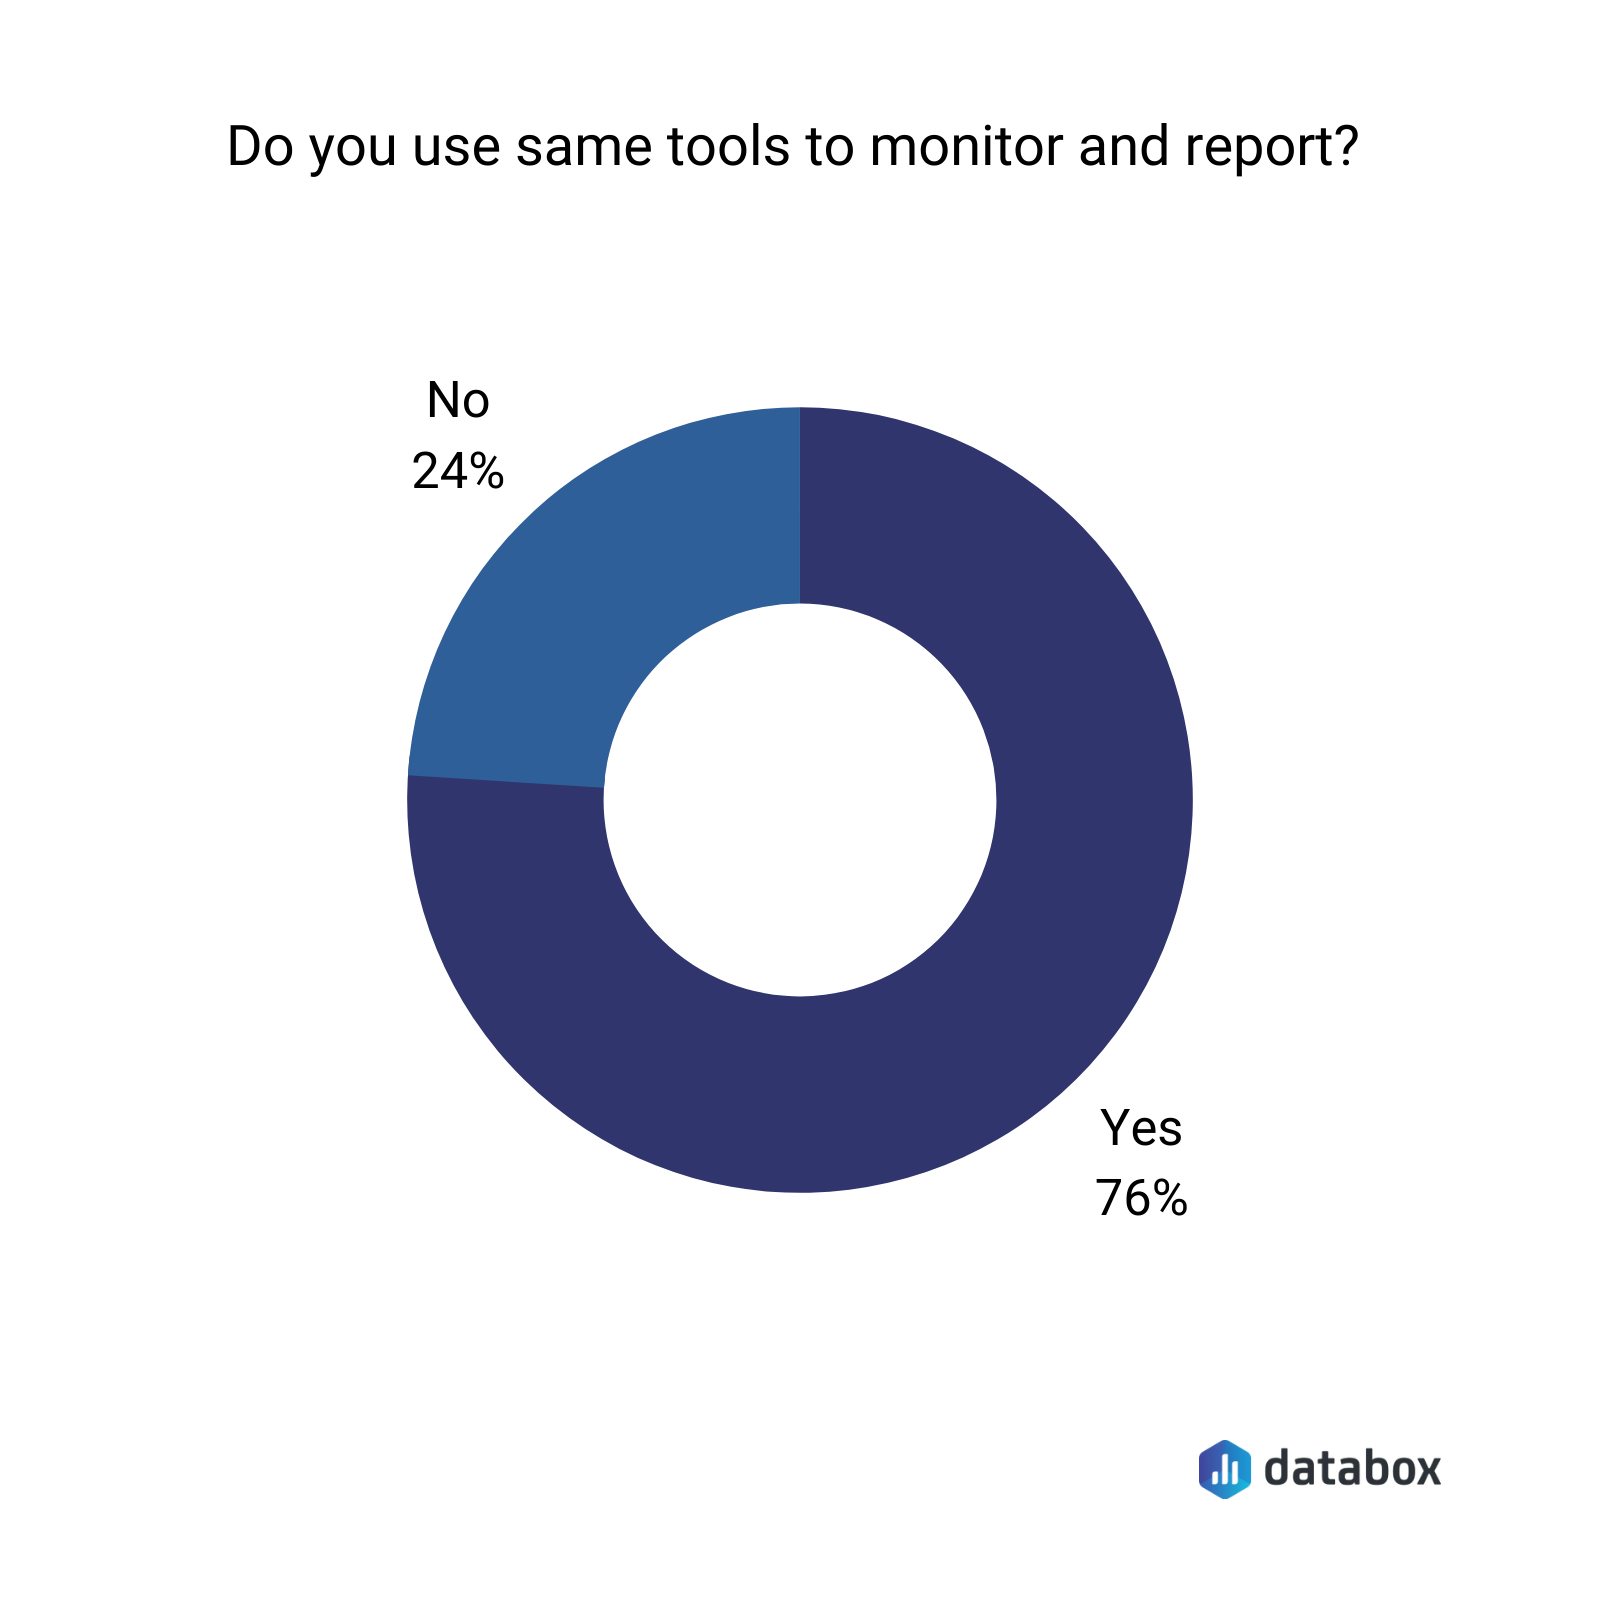 Do you use the same tools to monitor and report?